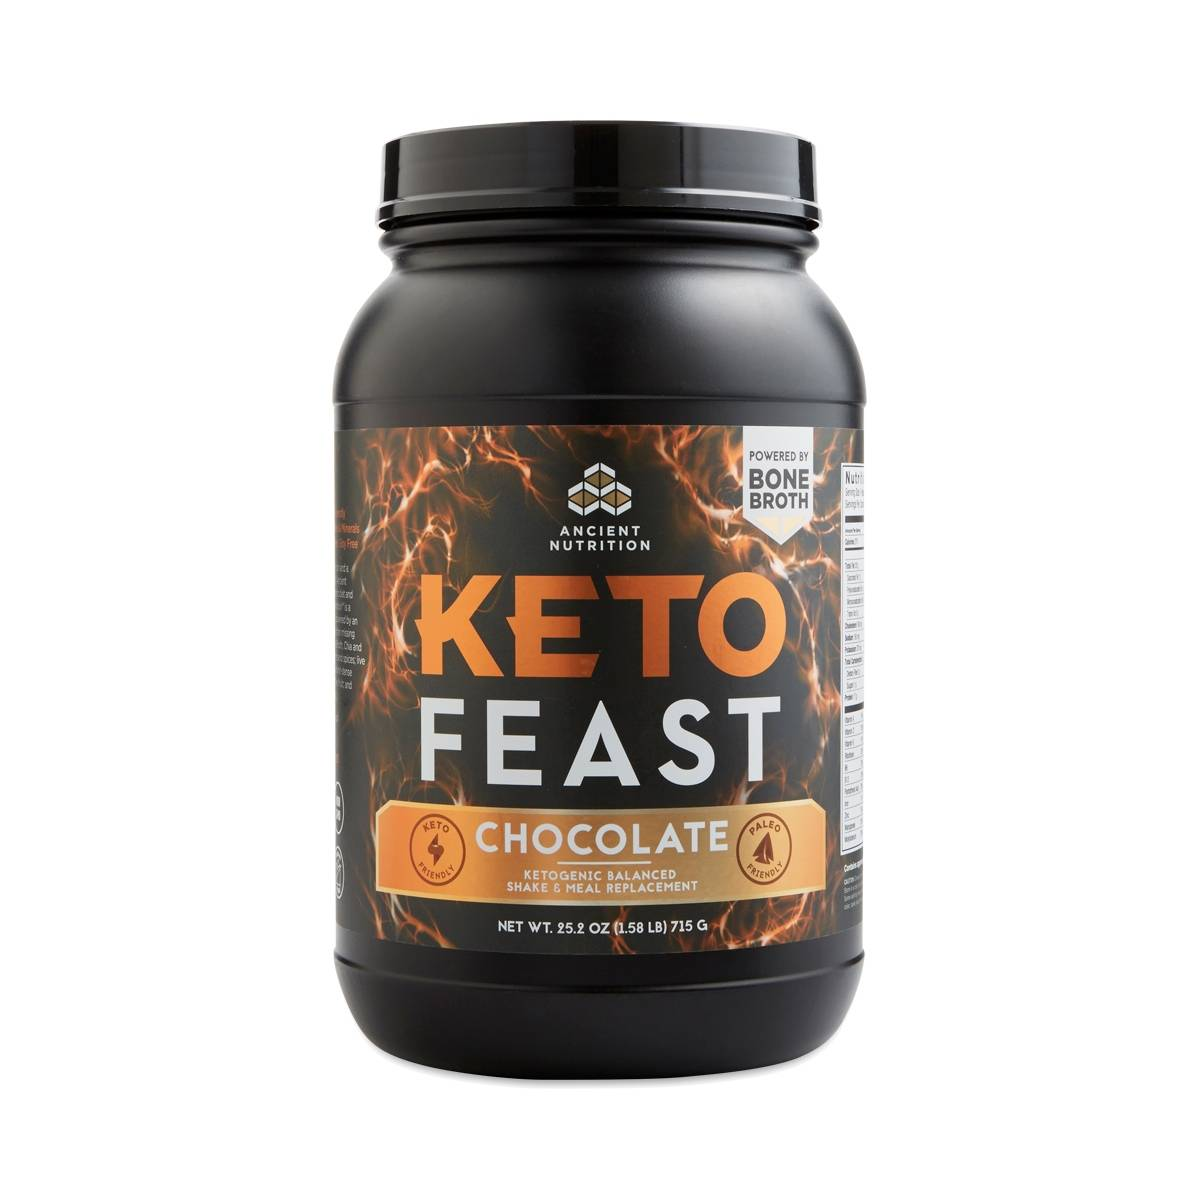 Ancient Nutrition Keto Feast Chocolate Thrive Market